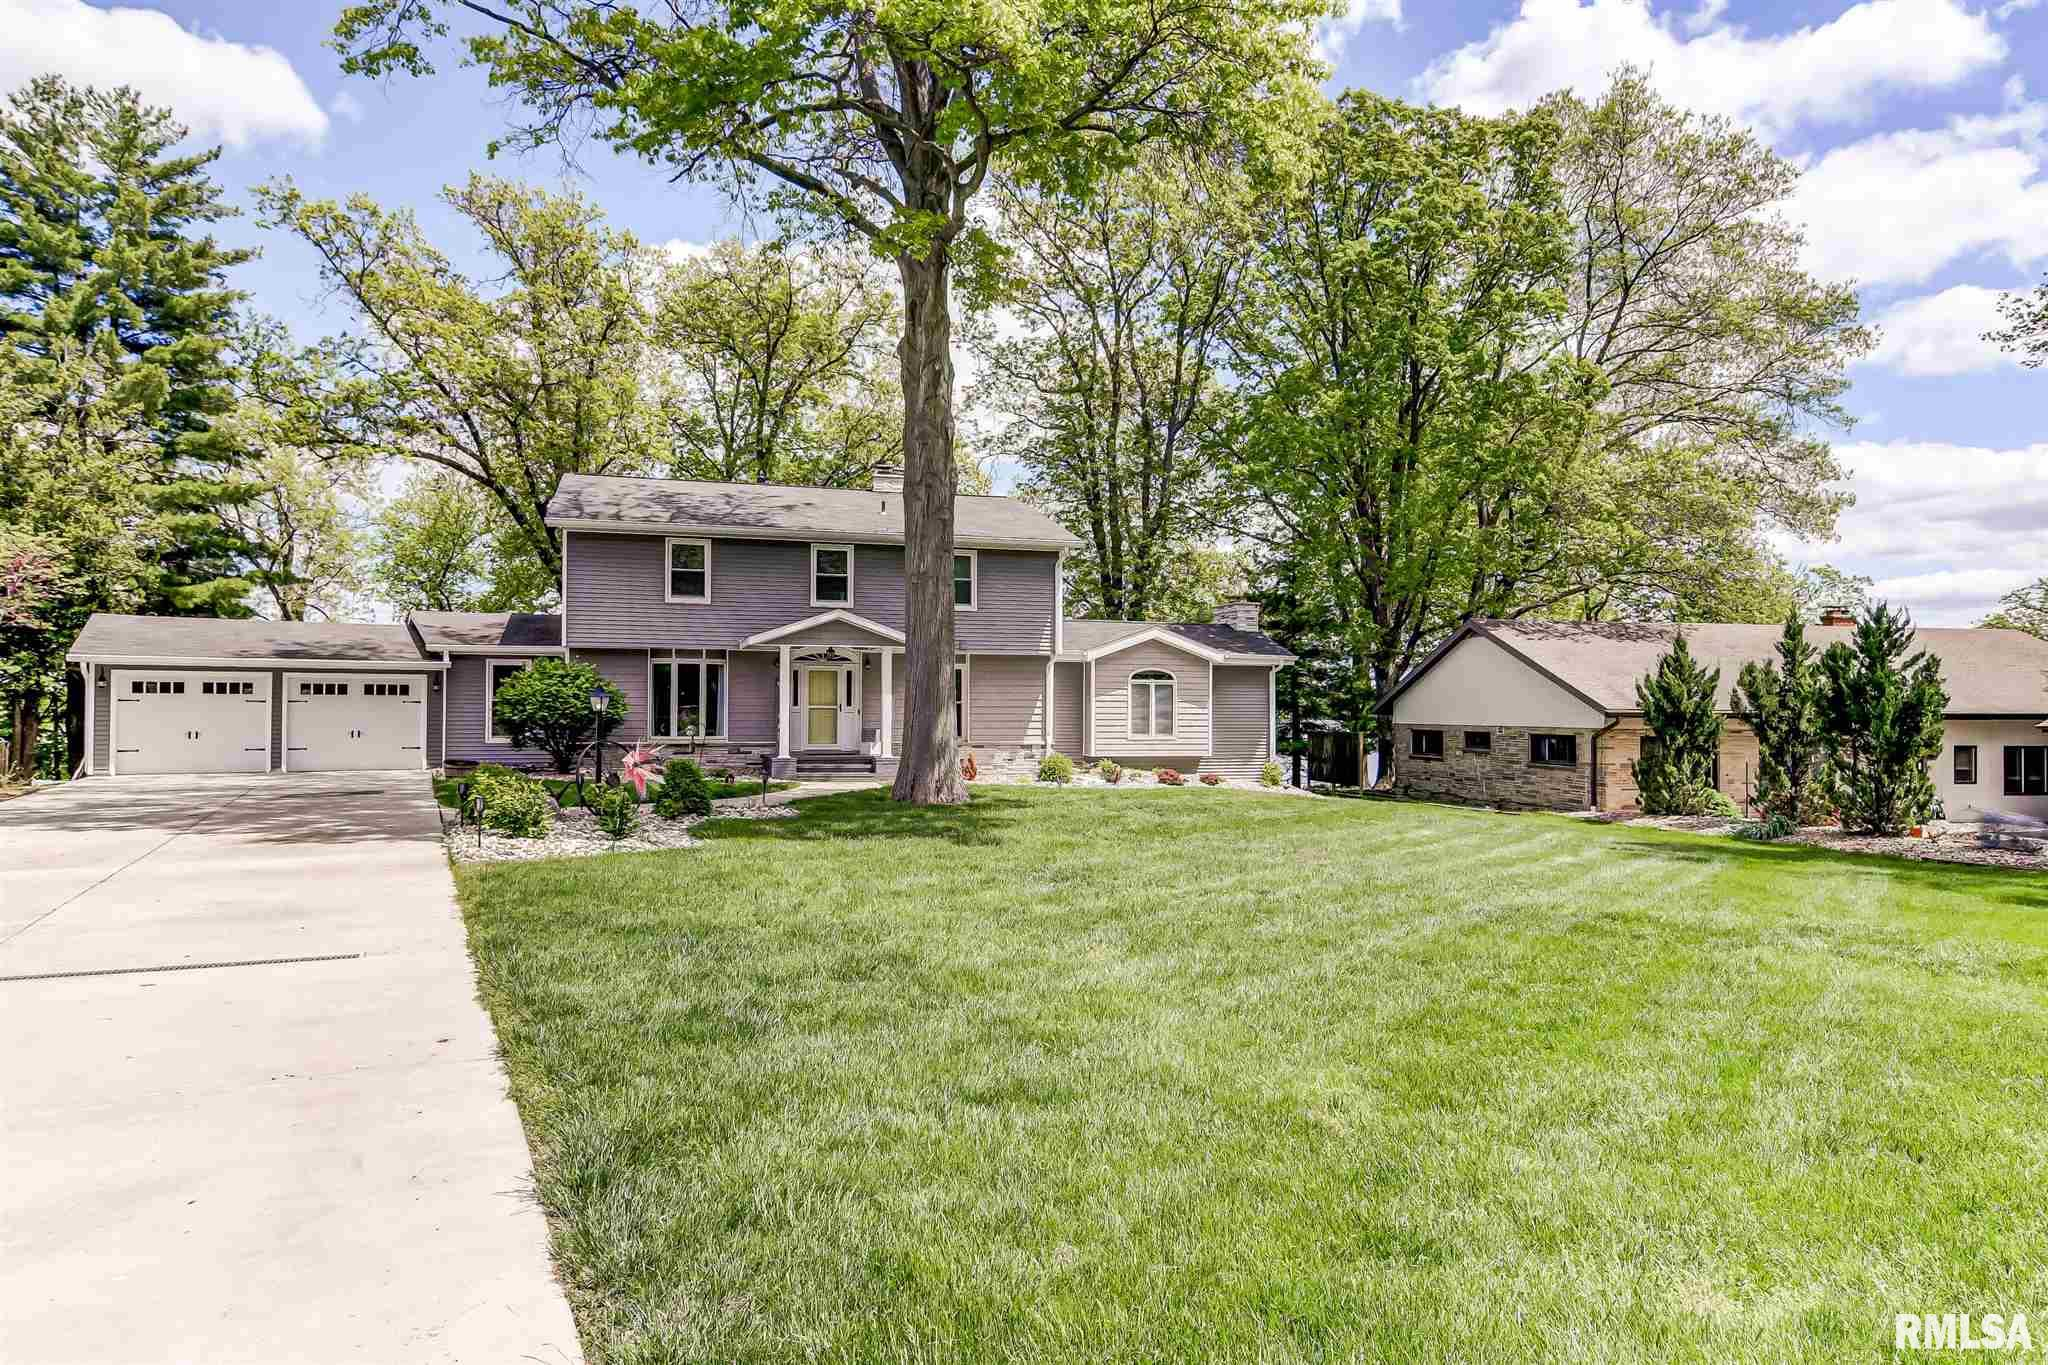 192 East Hazel Dell Property Photo - Springfield, IL real estate listing